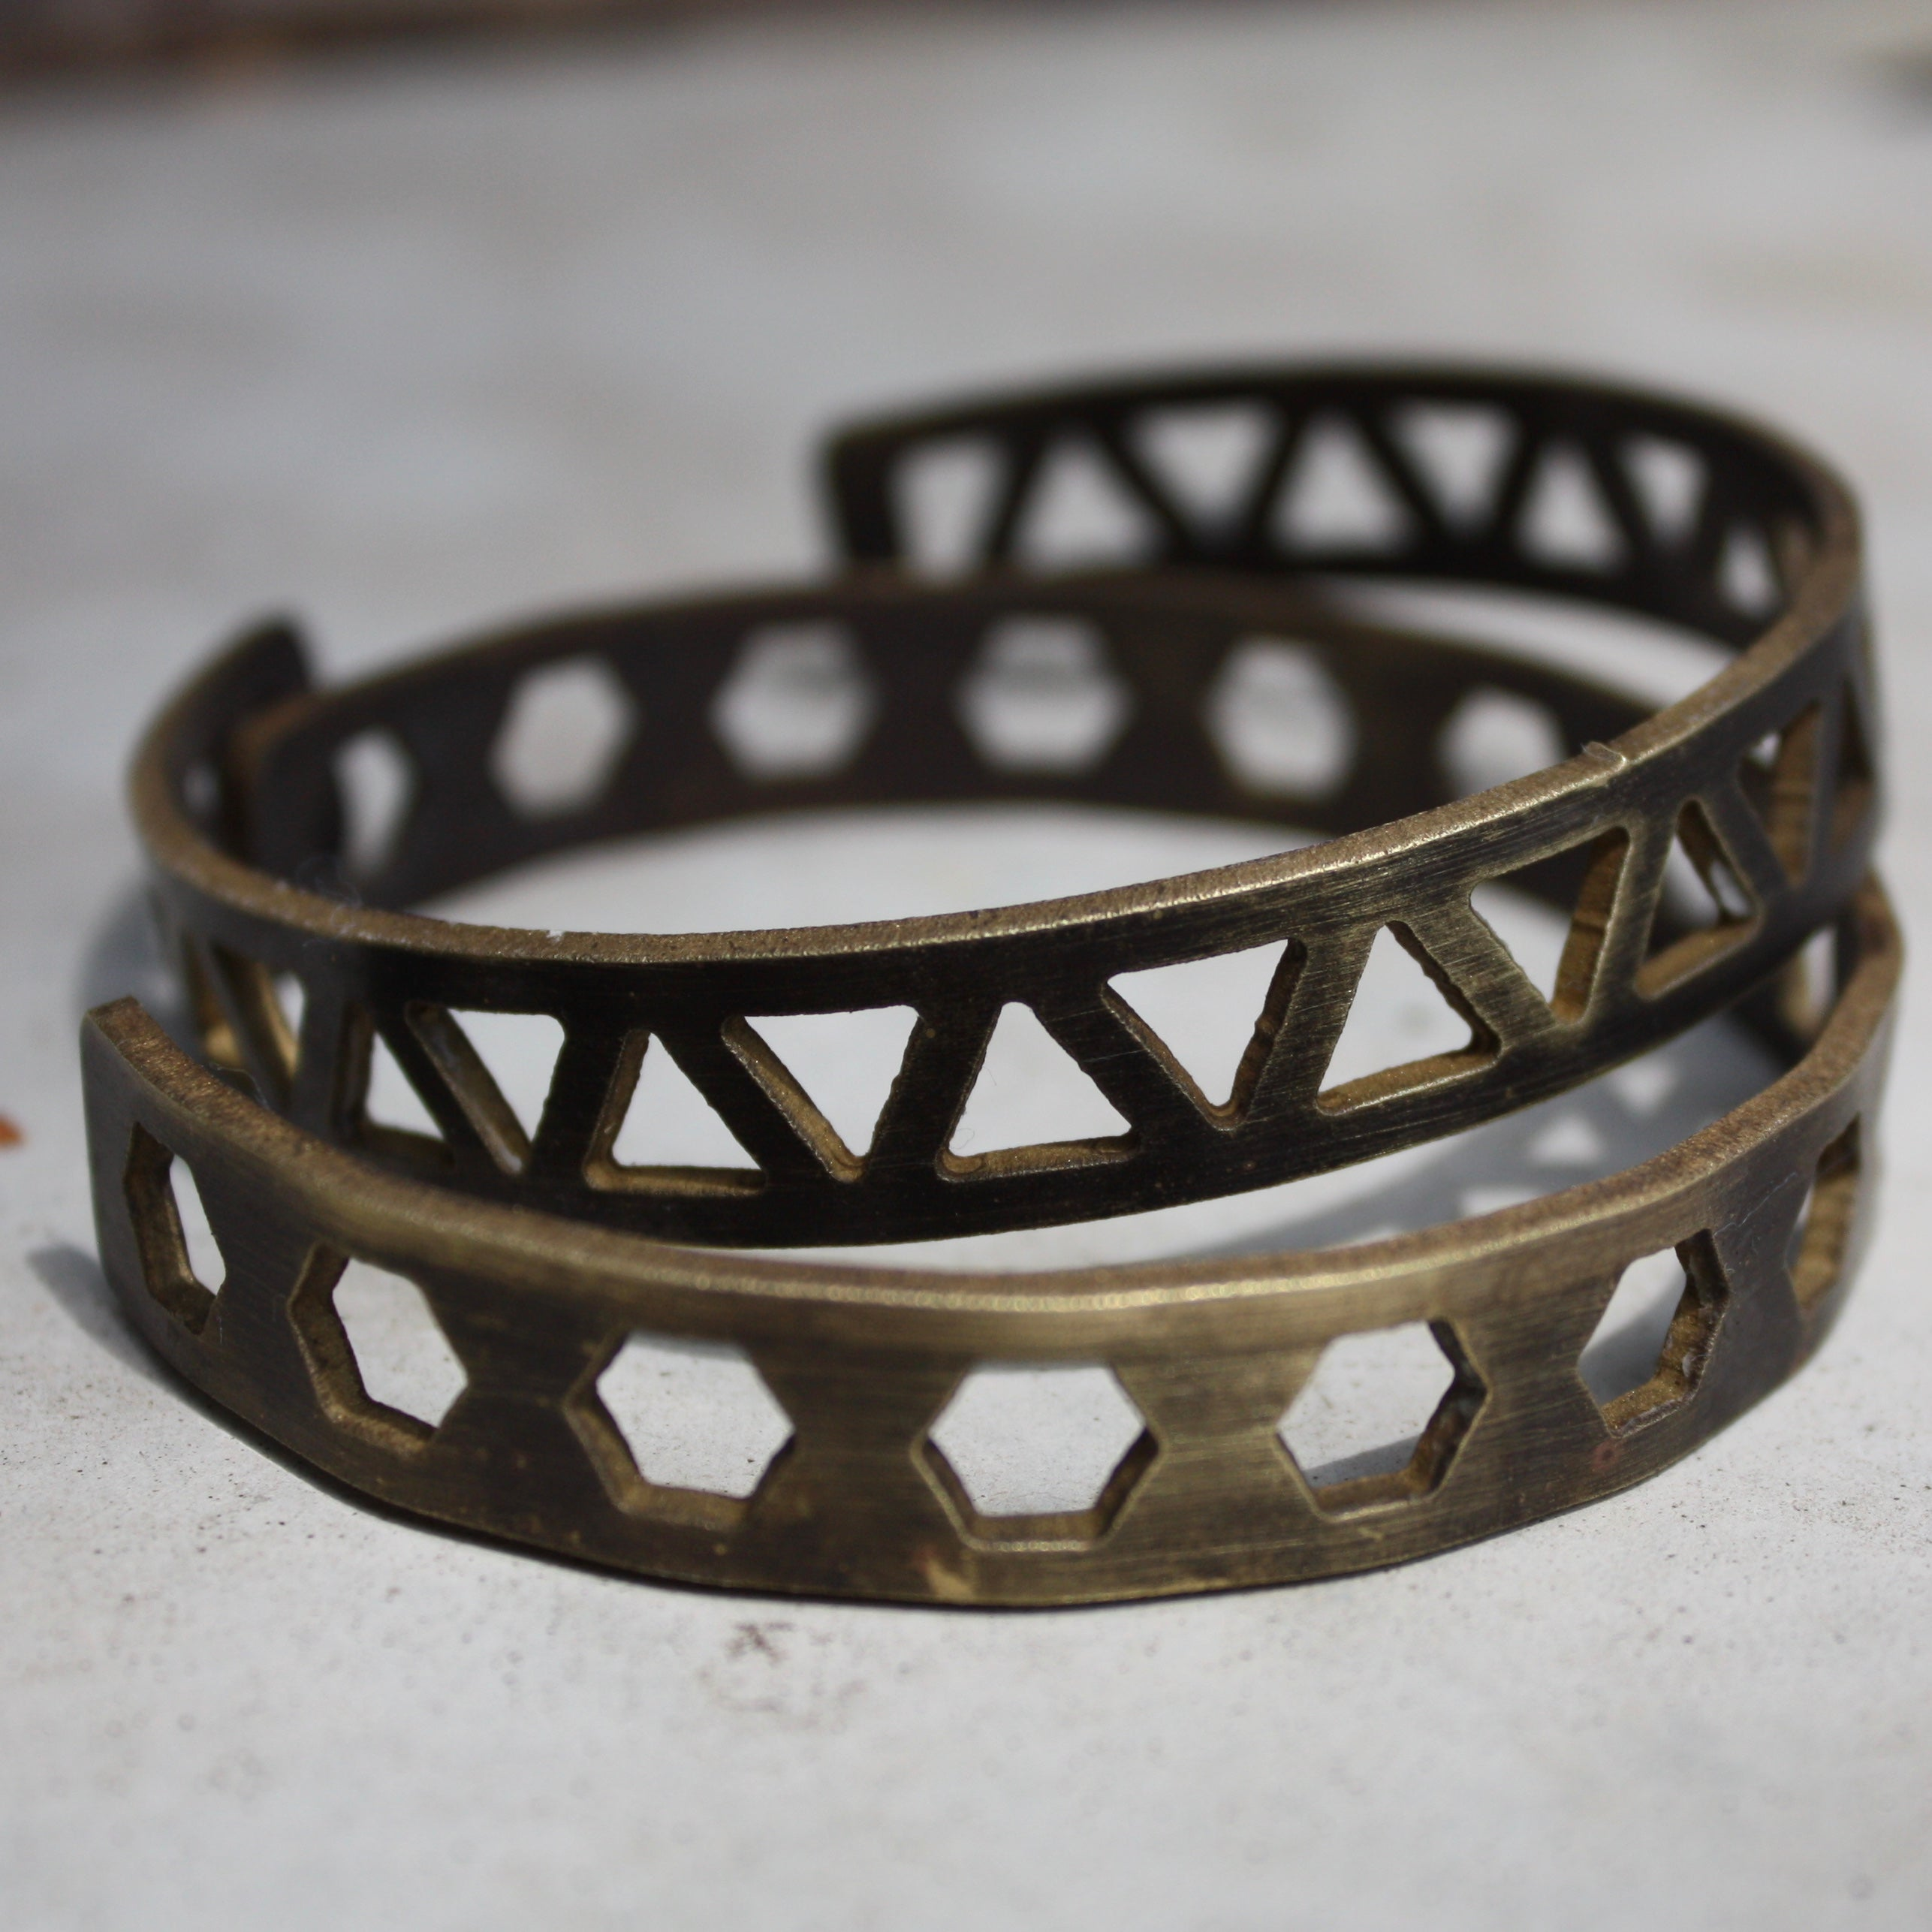 New Truss Inspired Bangle Cuffs